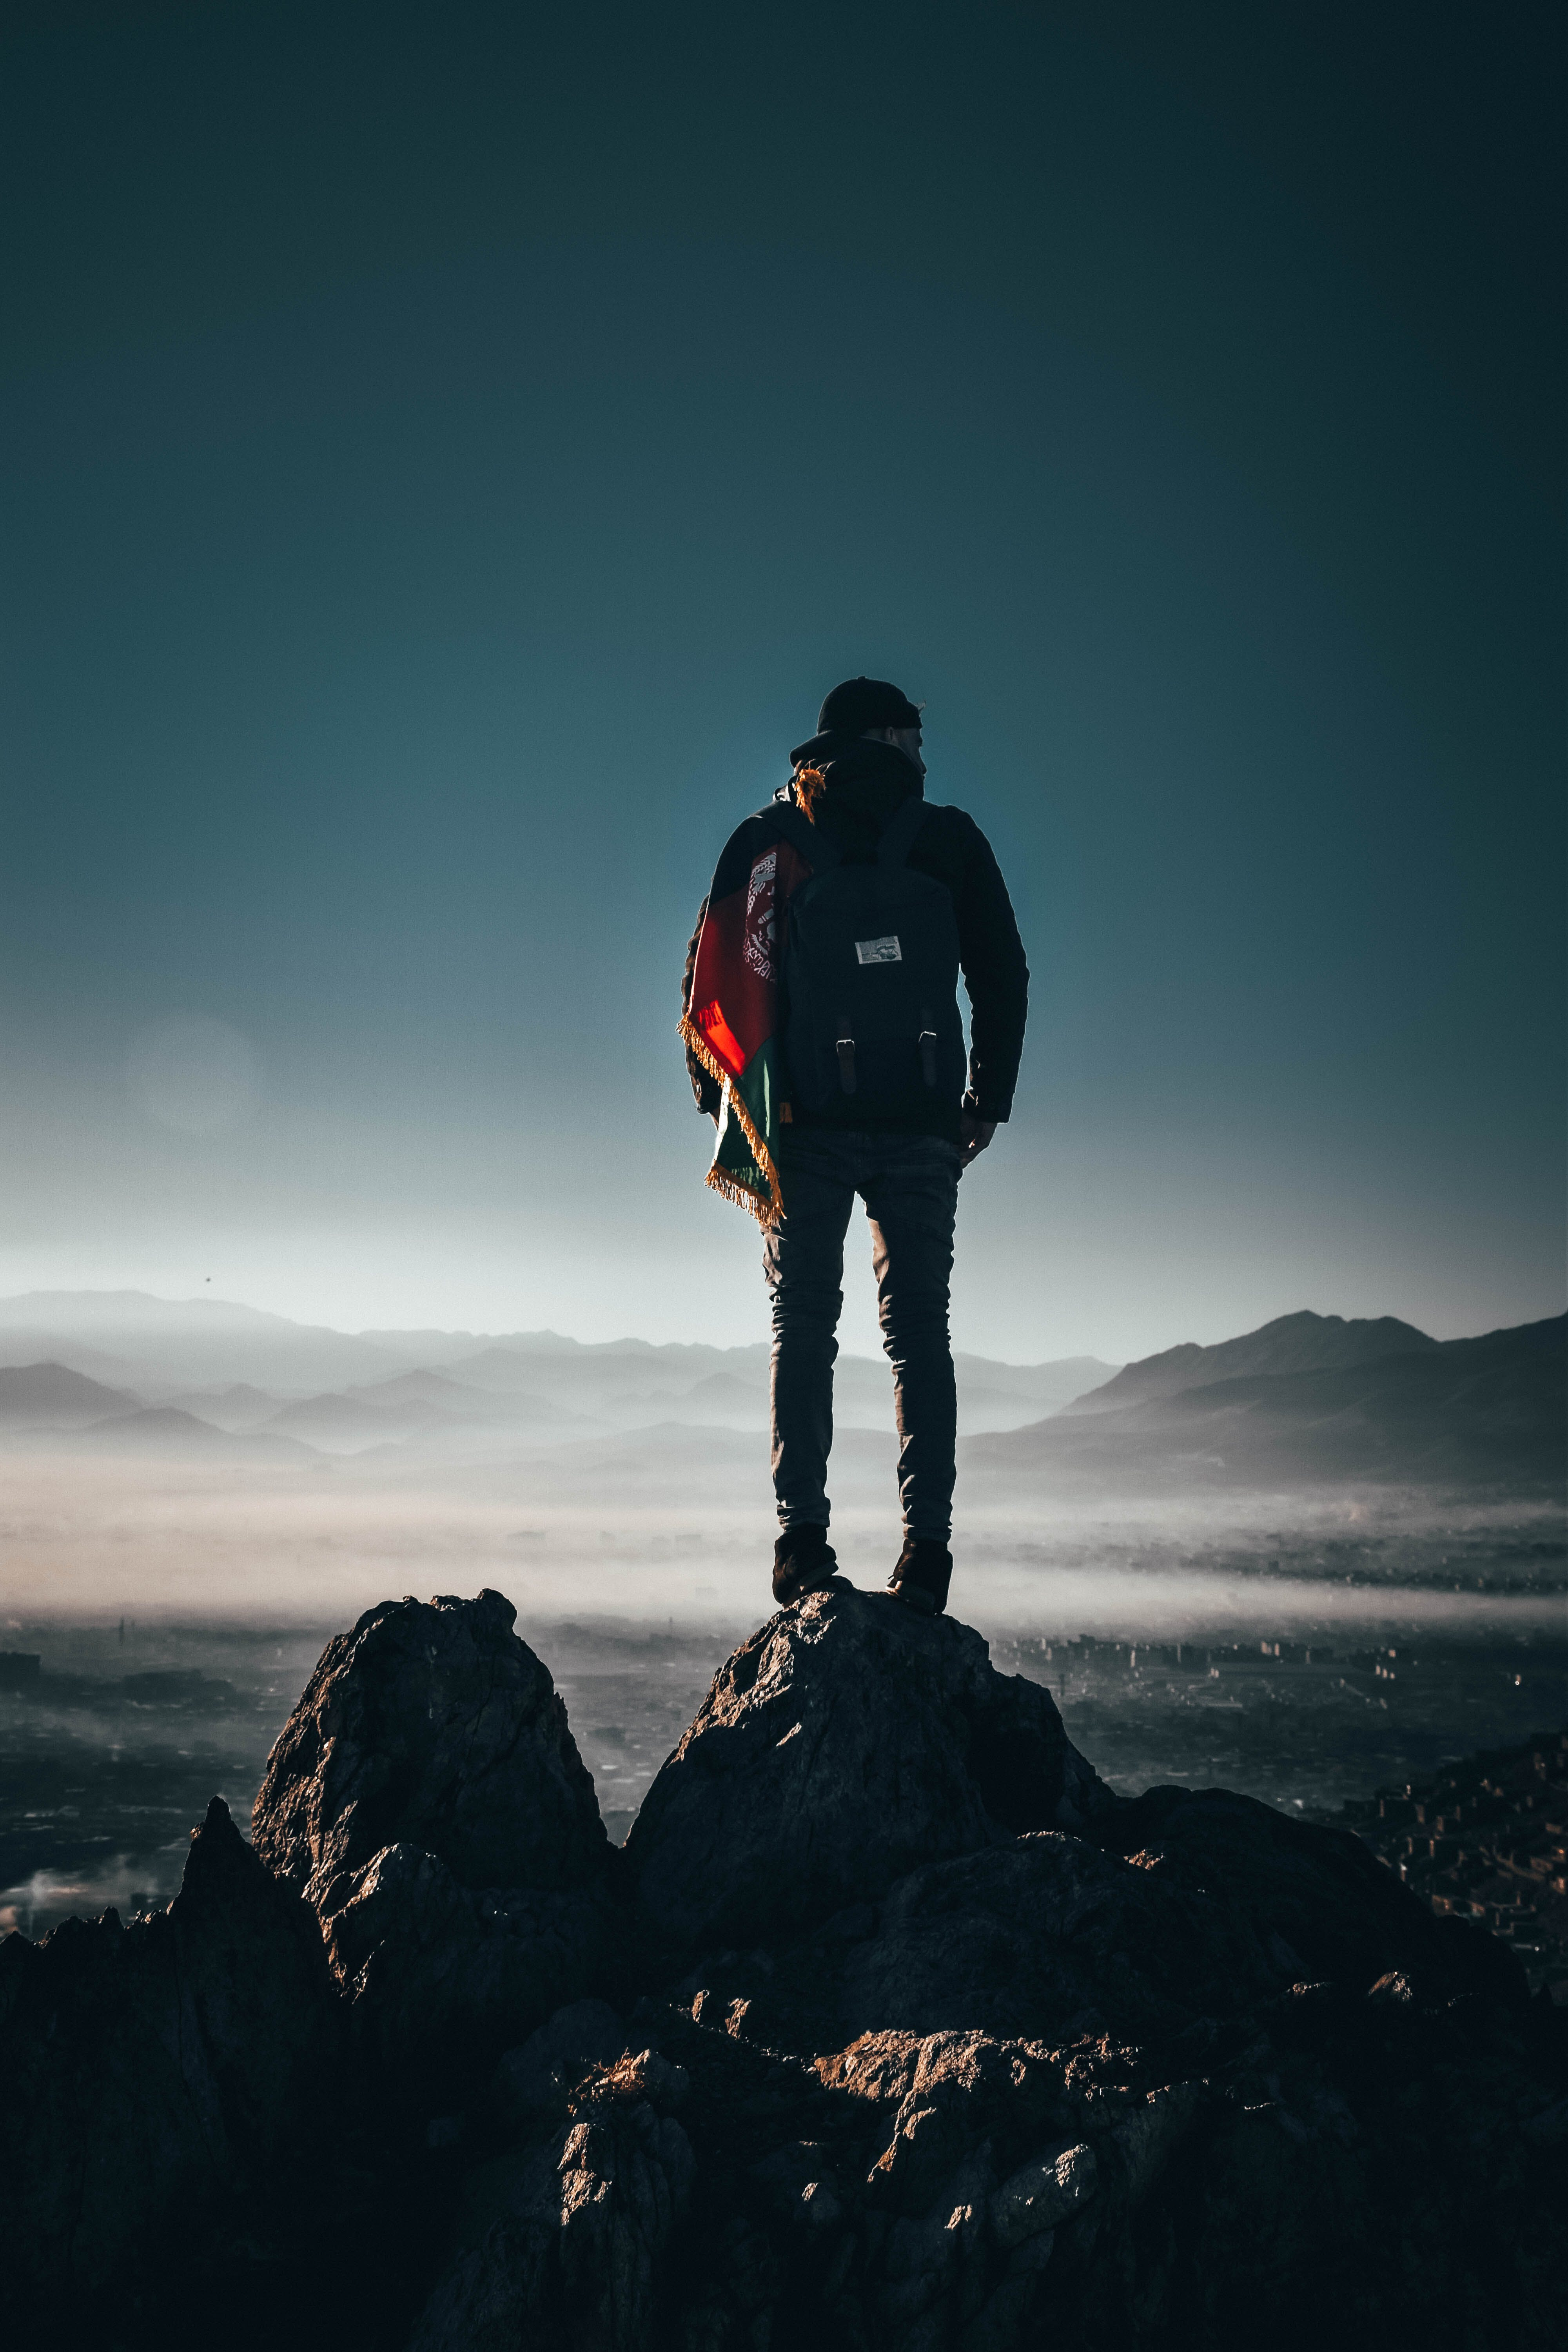 Man Carrying Backpack Standing on Rock Formation